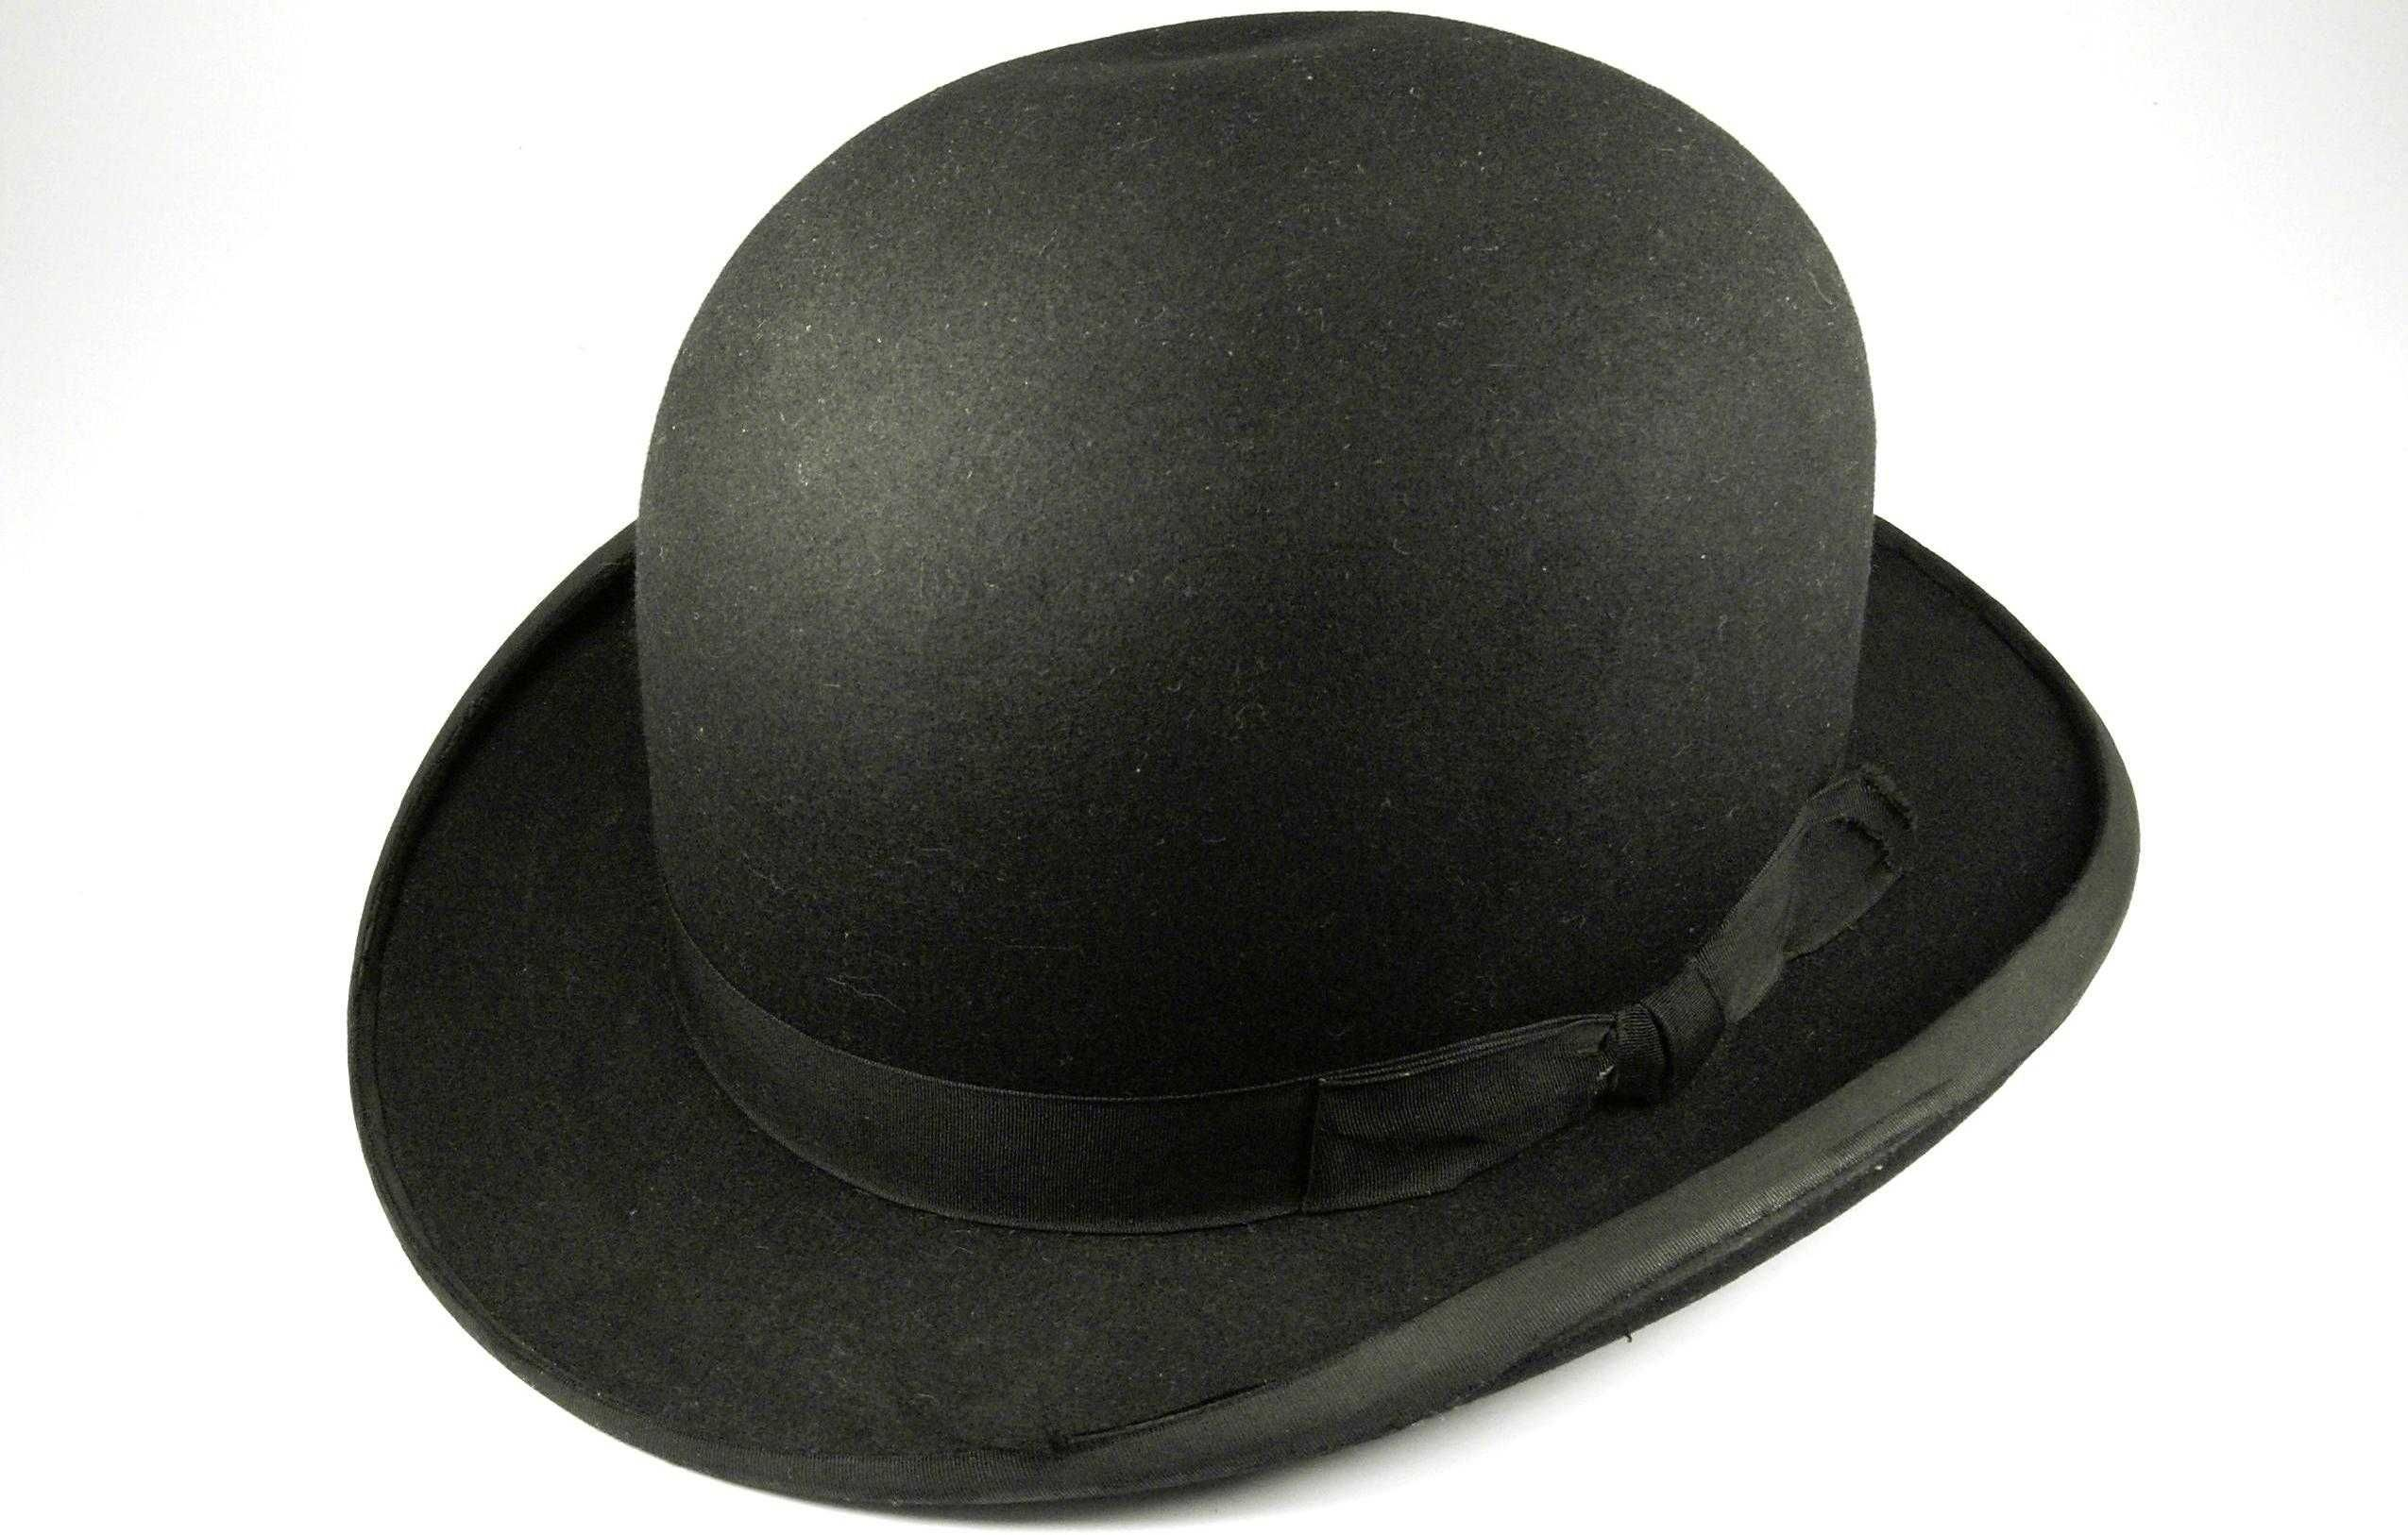 f138ba78f2b266 bowler hat, wear best with bow tie instead of tie | Kentucky Derby ...